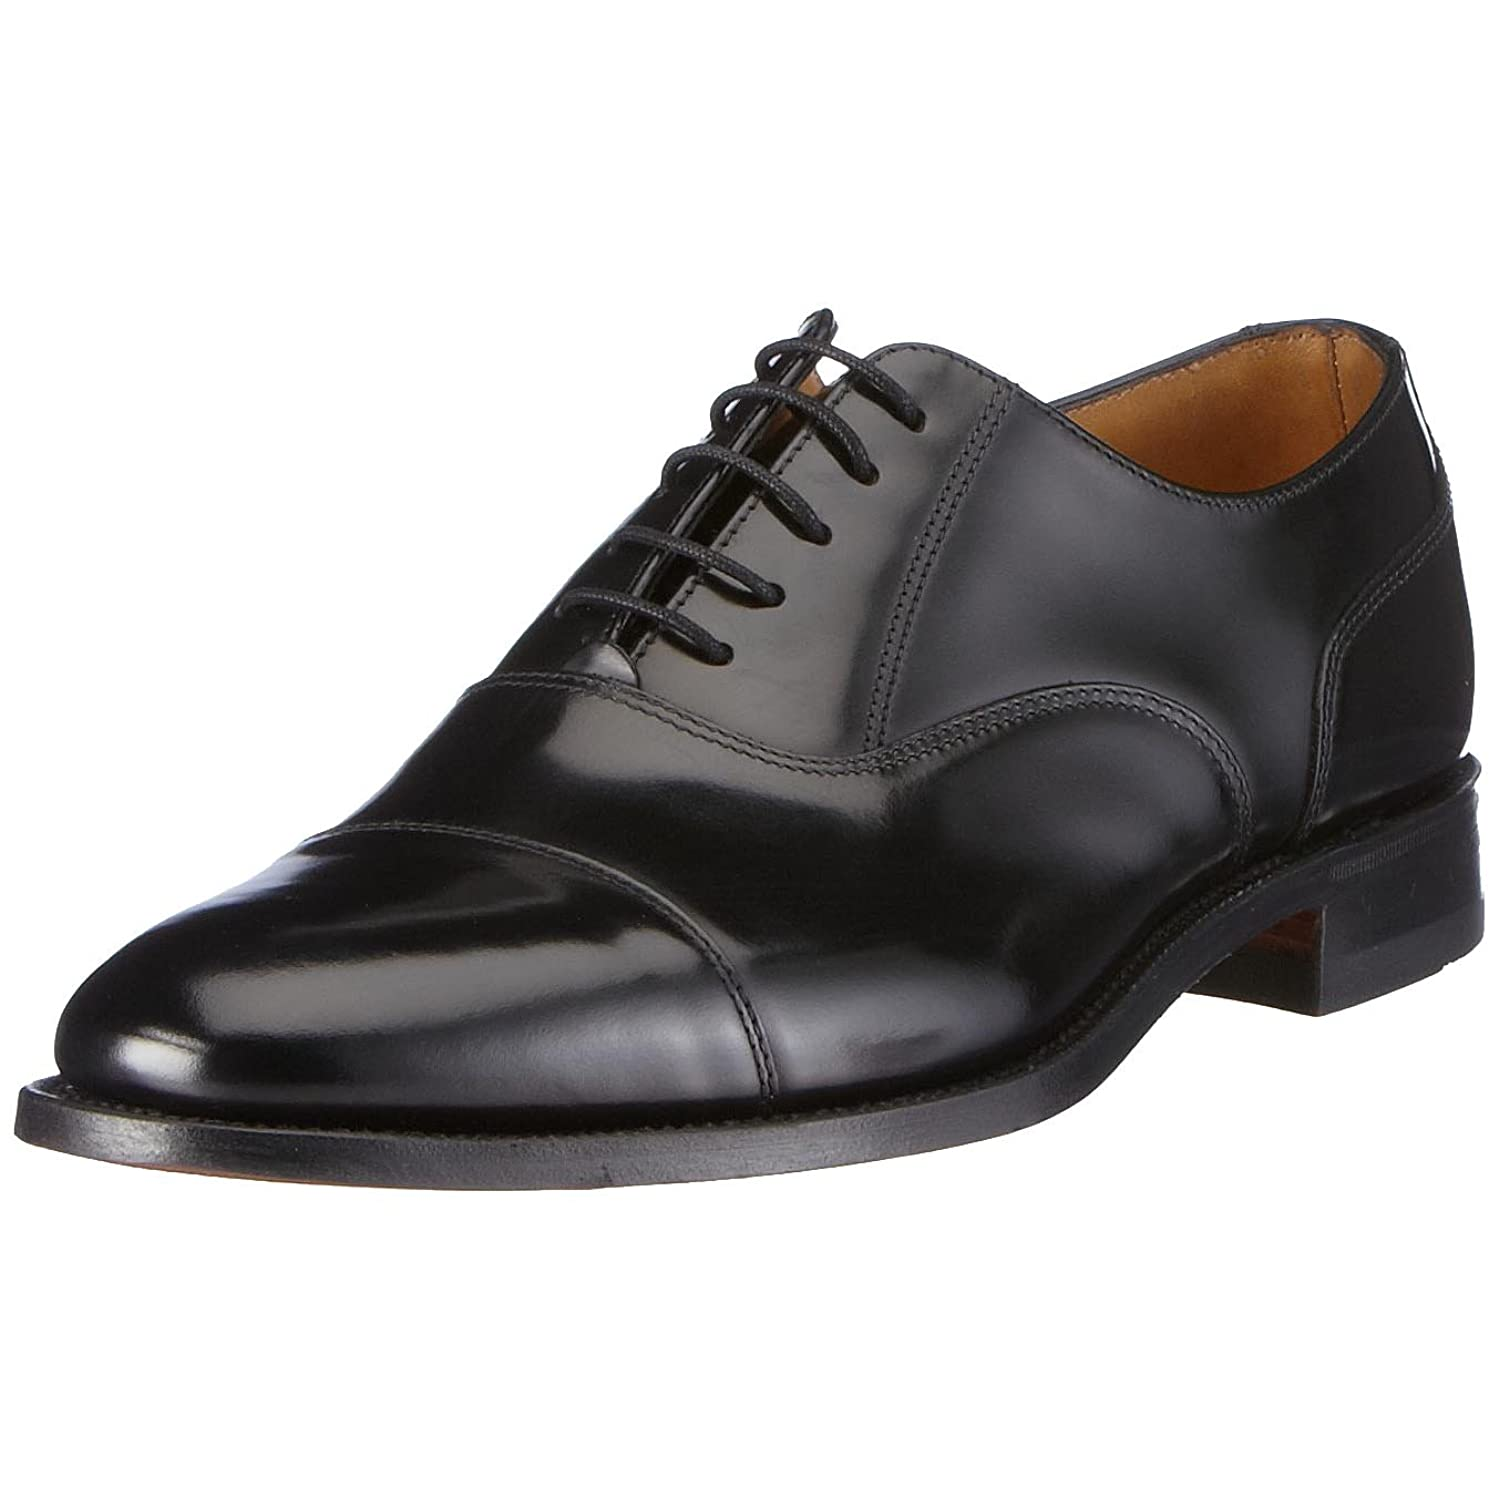 a11cb6167b1e8 Loake 806B Mens Formal Lace Up Shoes: Amazon.co.uk: Shoes & Bags